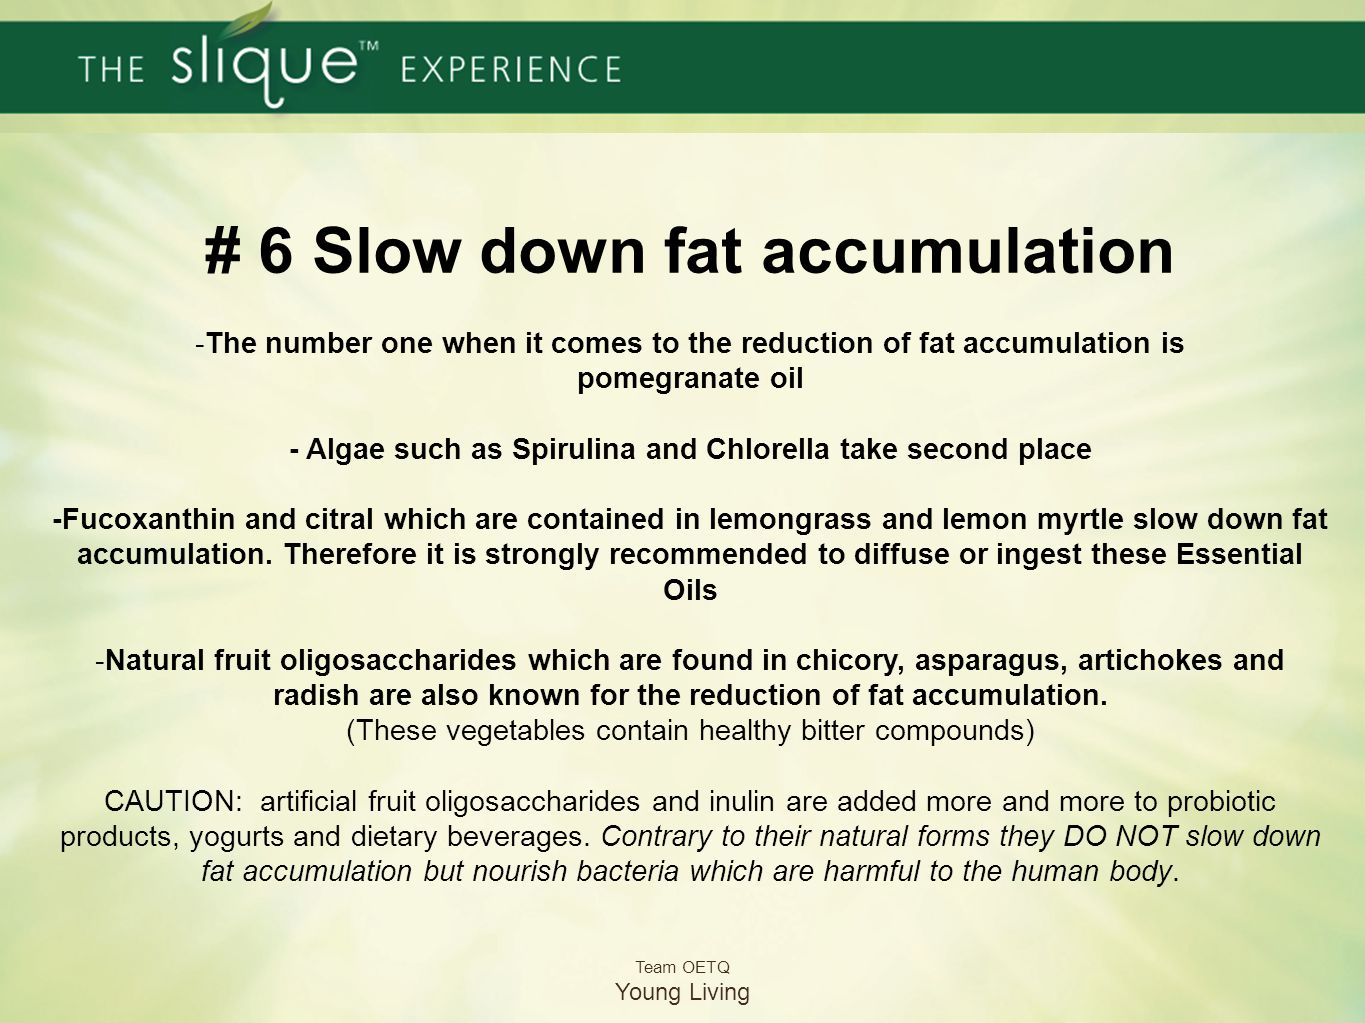 # 6 Slow down fat accumulation